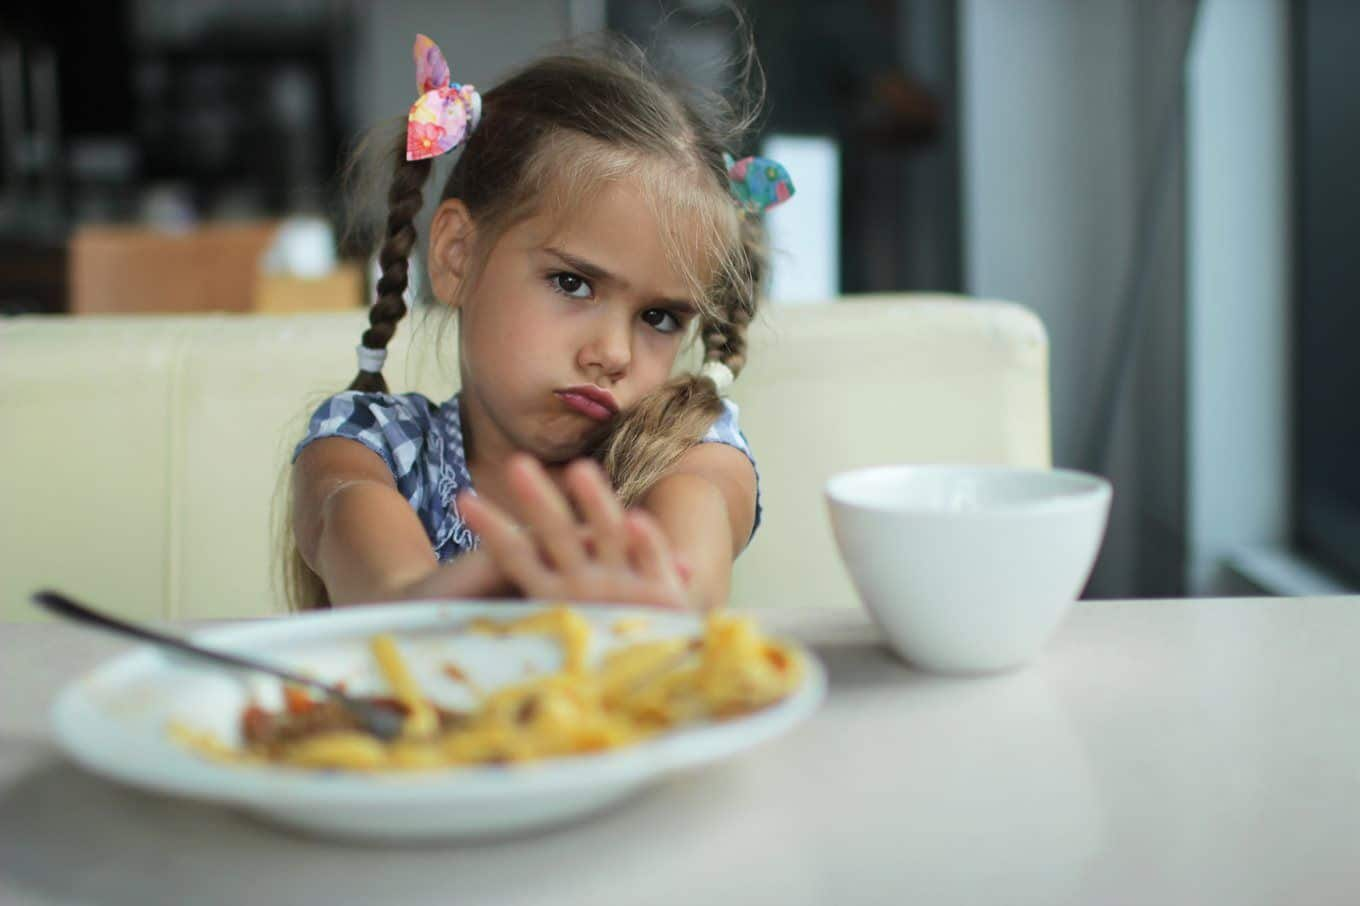 Parenting Tips: 7 Easy Ways To Deal With A Picky Eater  Dos and Don'ts